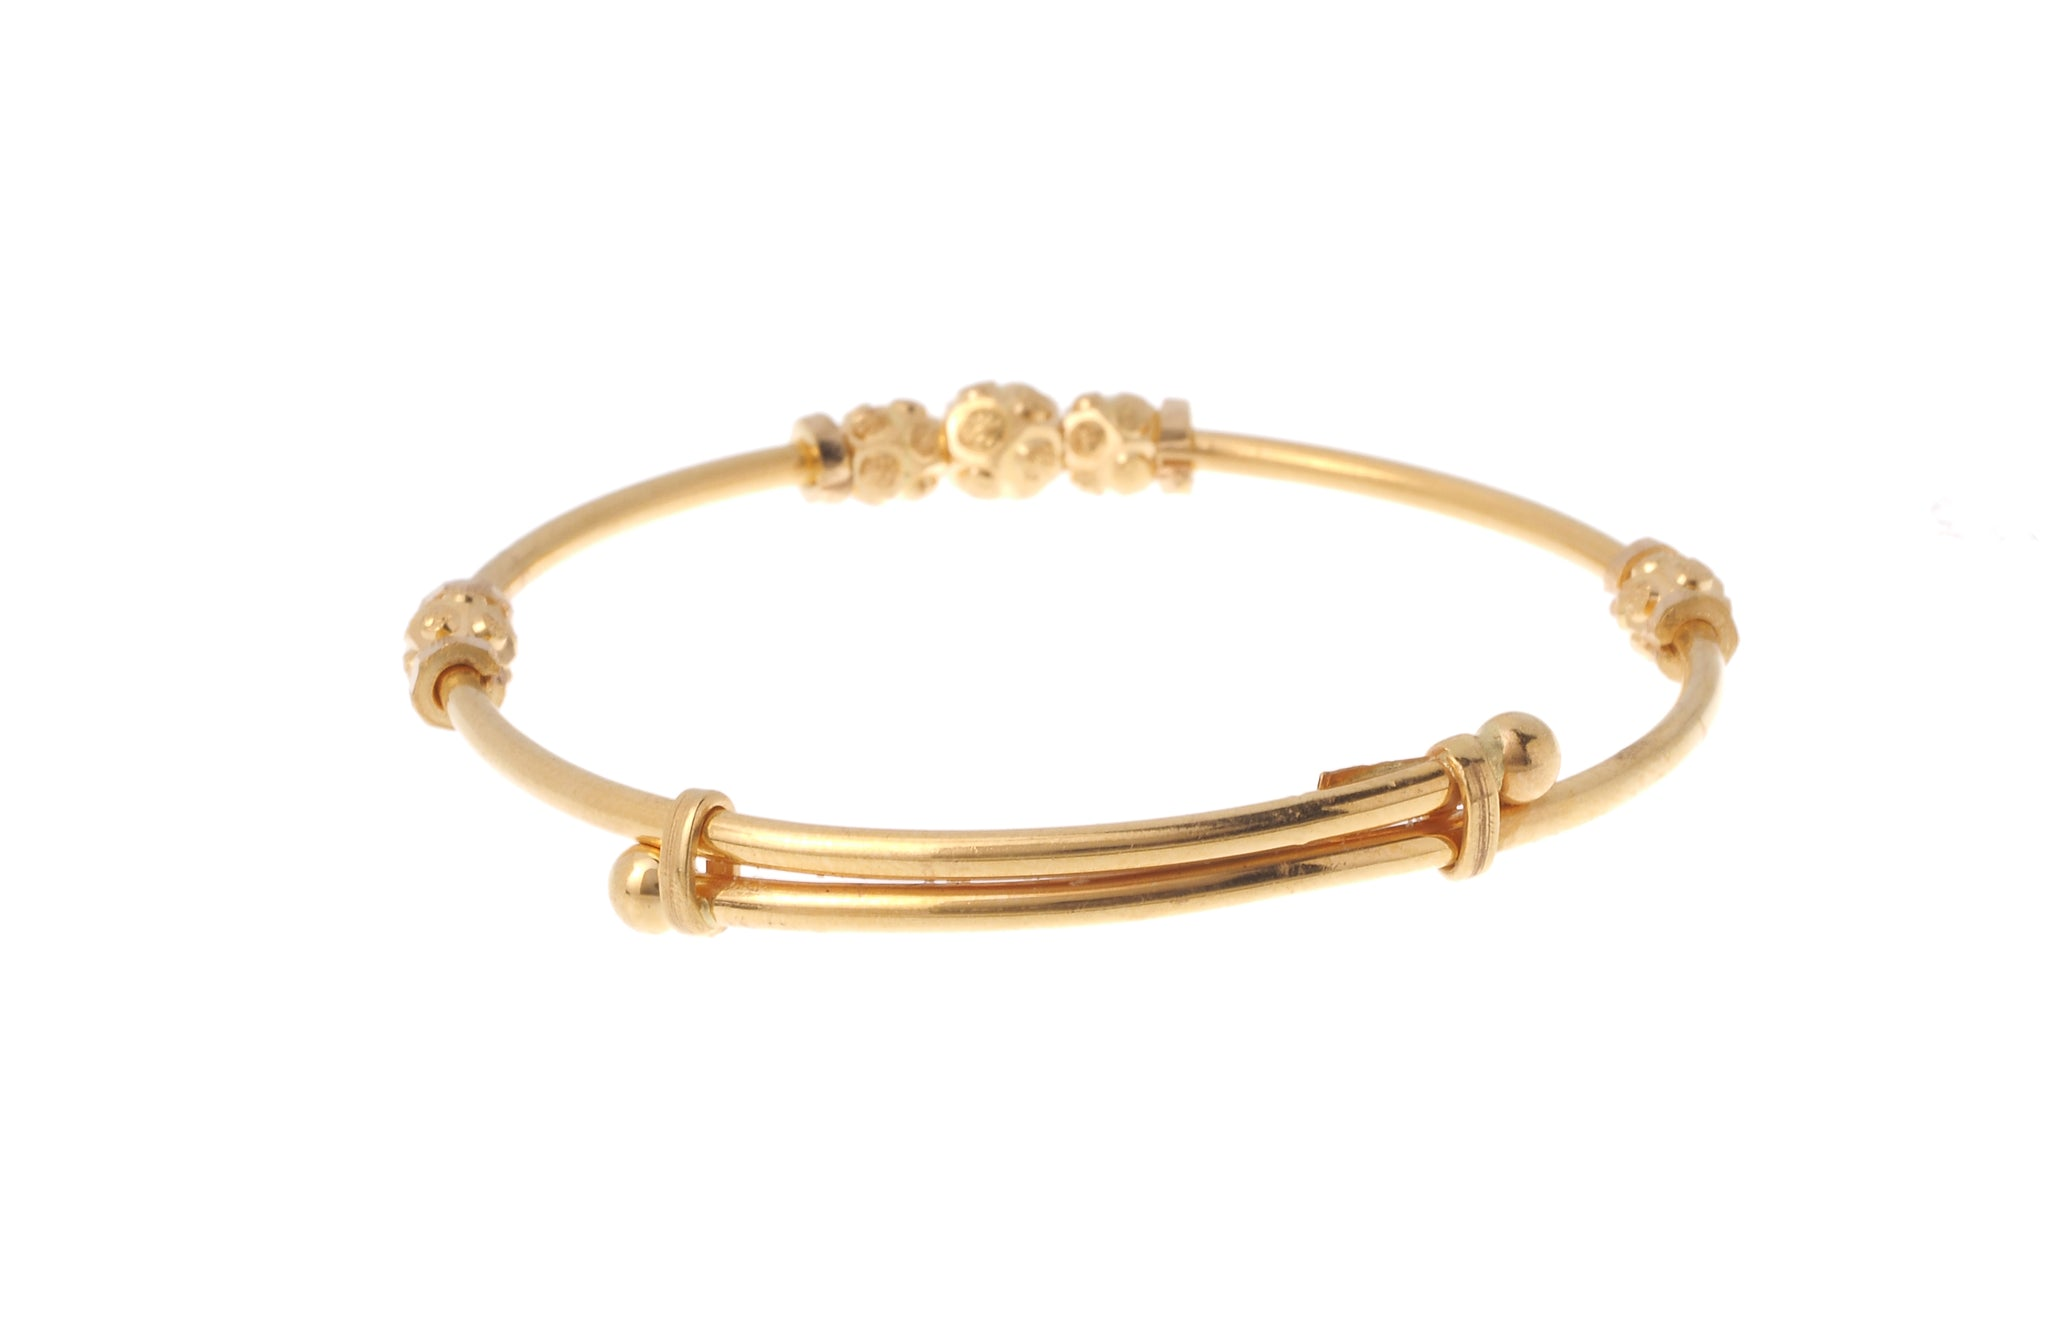 22ct Gold Adjustable Children's Bangles with Diamond Cut Design (CB-7164)